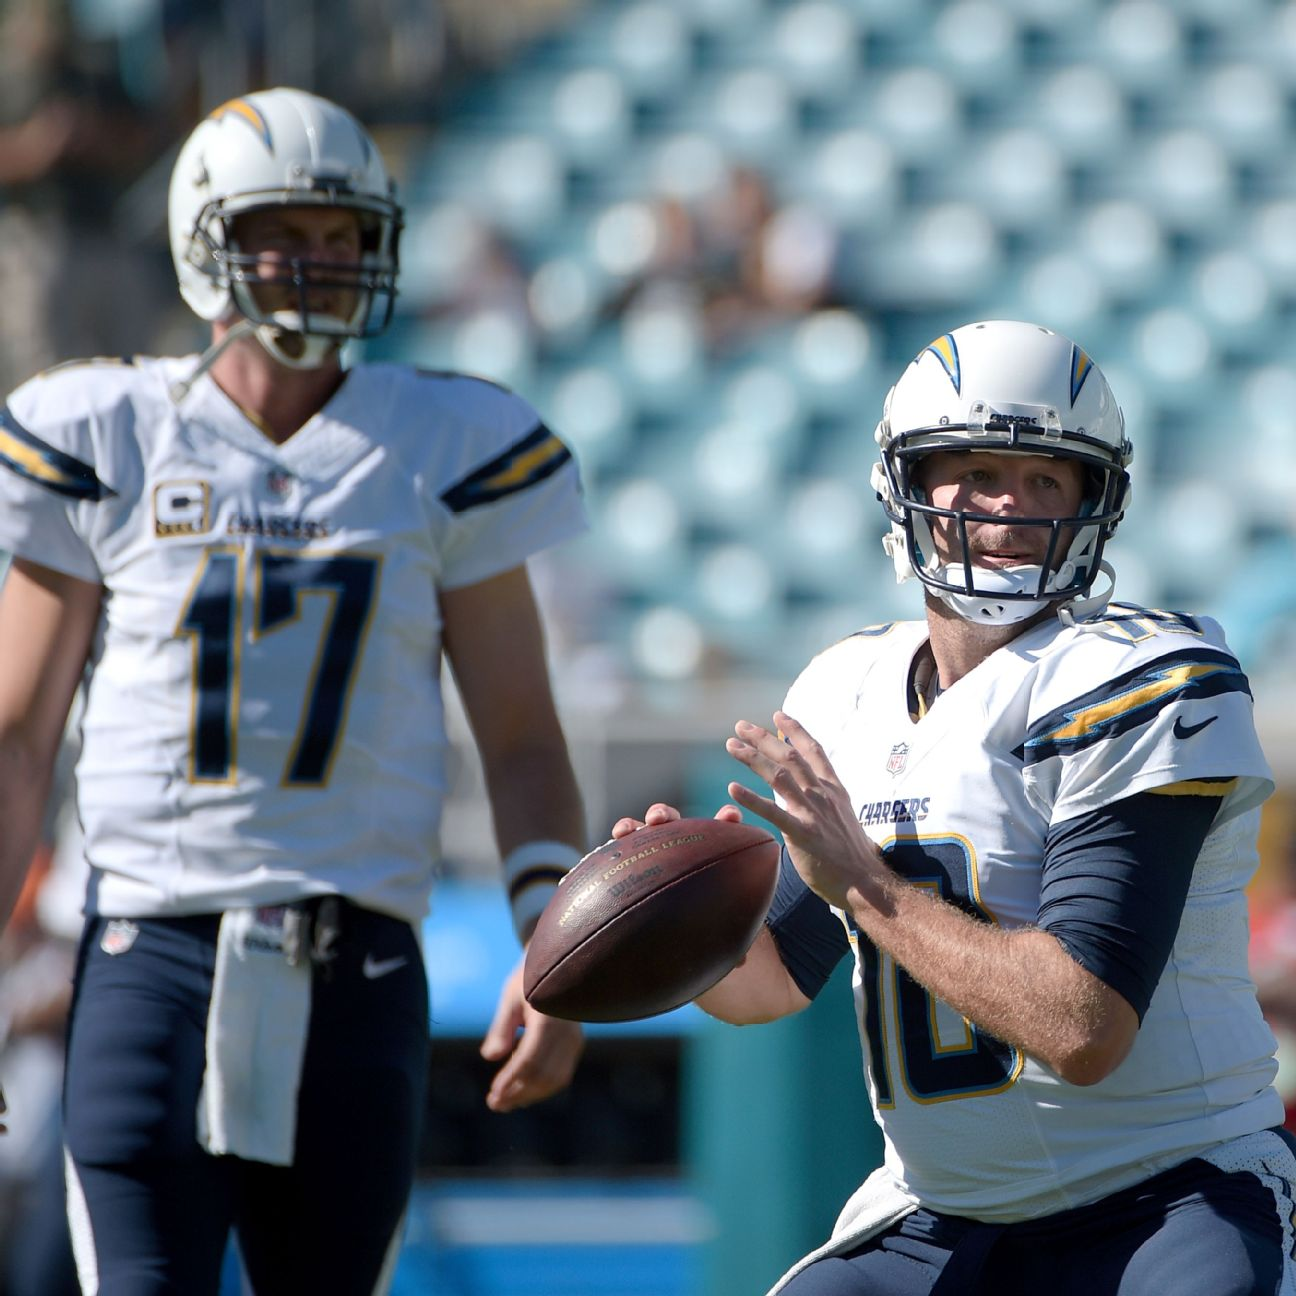 San Diego Chargers Backup Quarterback: San Diego Chargers Re-sign Backup Quarterback Kellen